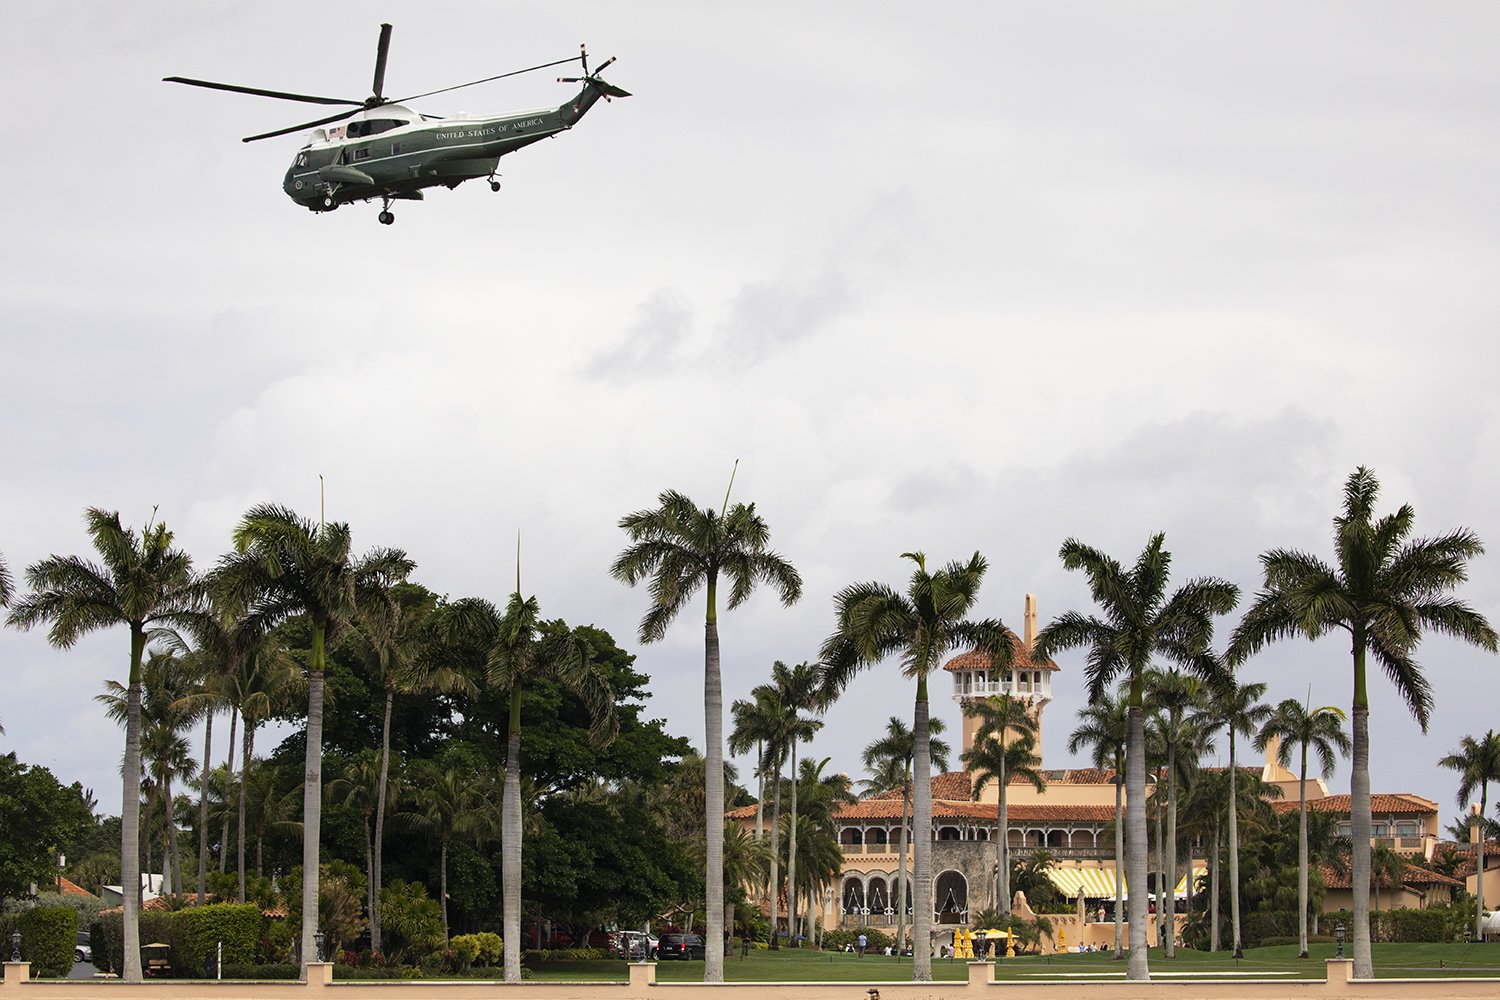 Trump Surprisingly Unconcerned About Mar-a-Lago Breach